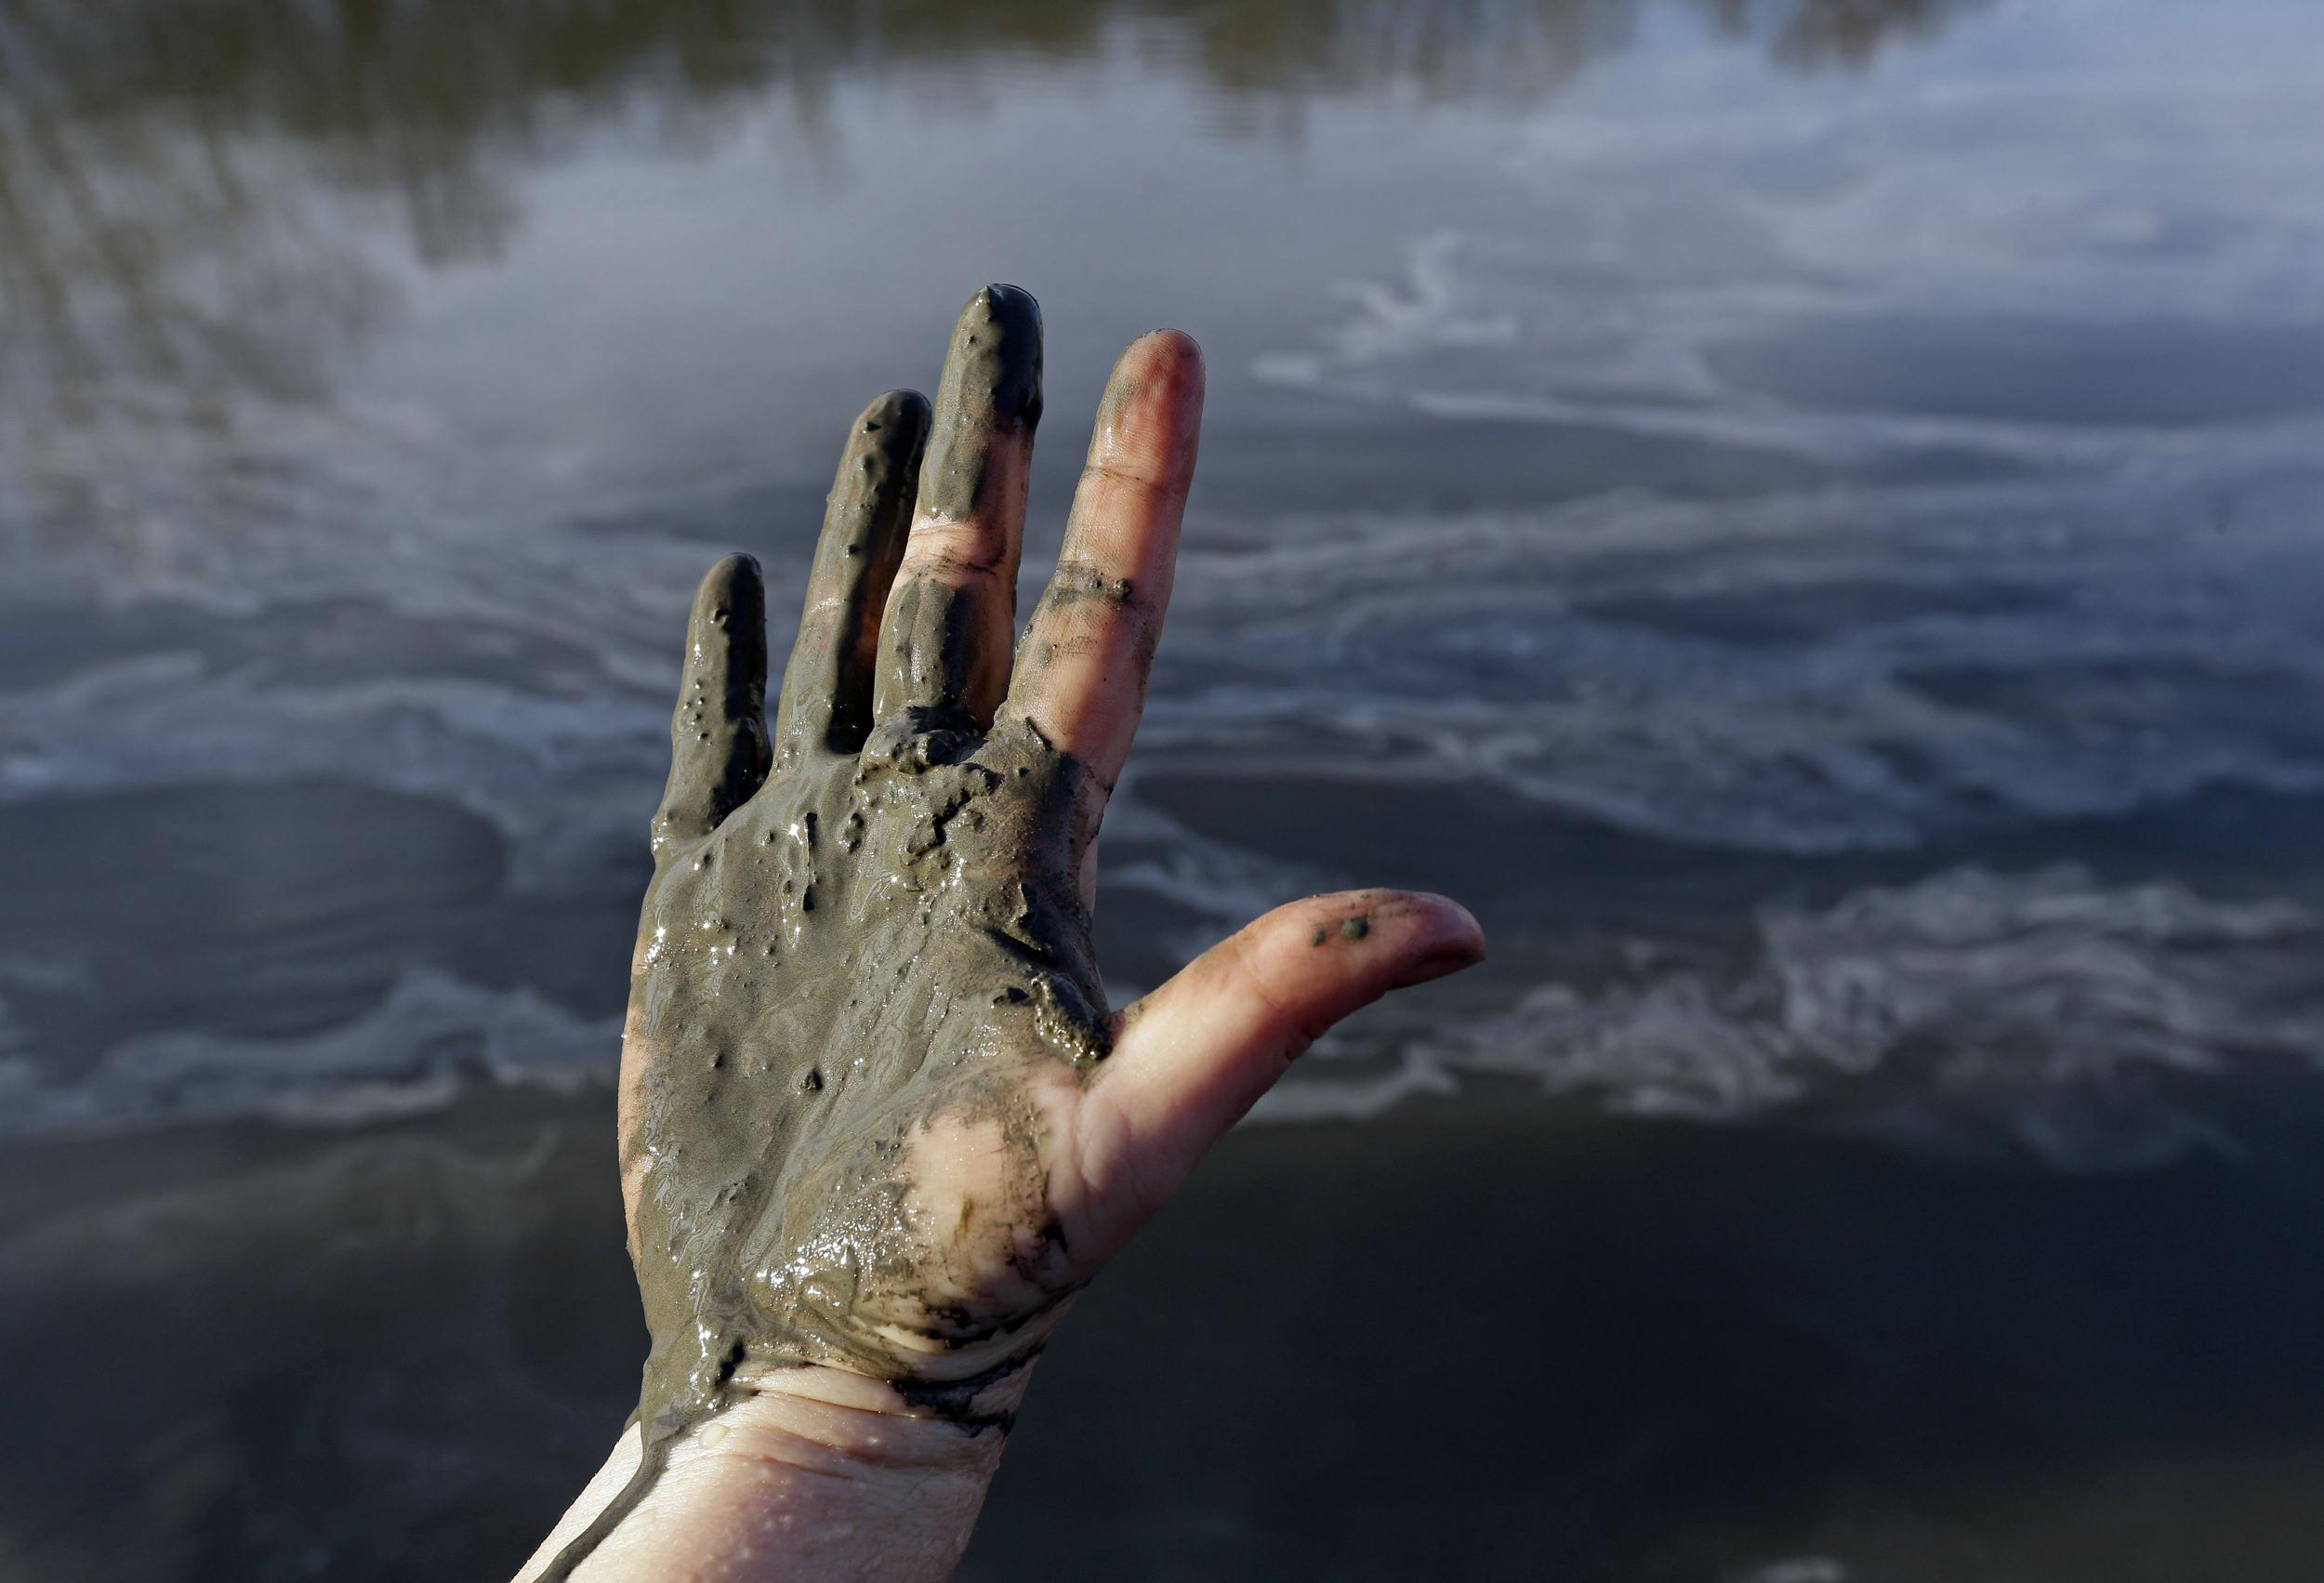 Image: Amy Adams, North Carolina campaign coordinator with Appalachian Voices, shows her hand covered with wet coal ash